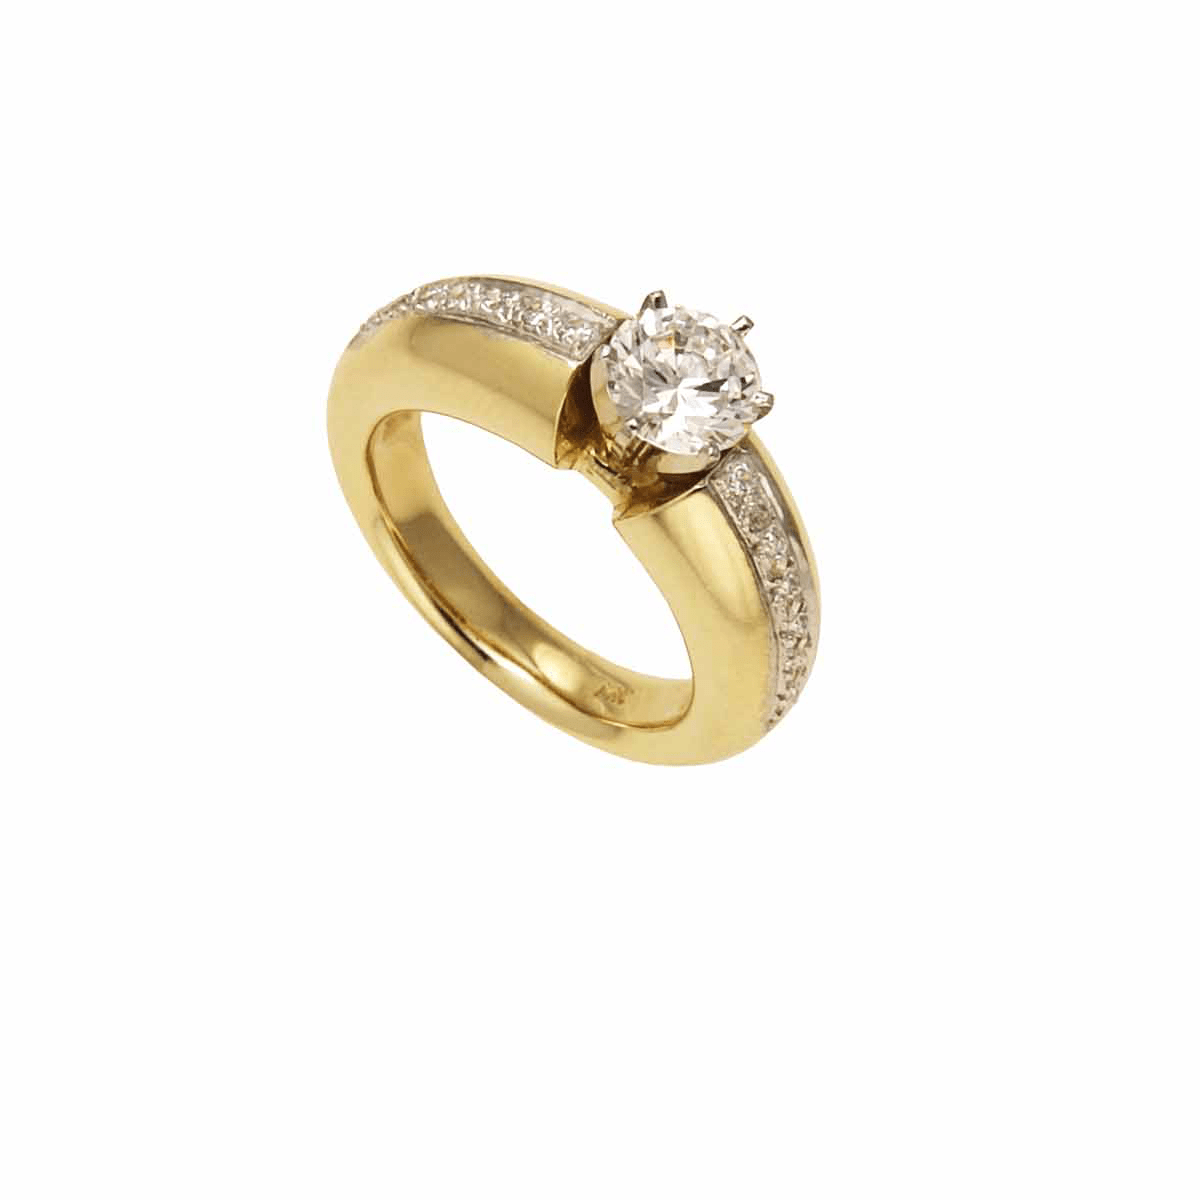 18 Karat Yellow Gold Engagement Ring -